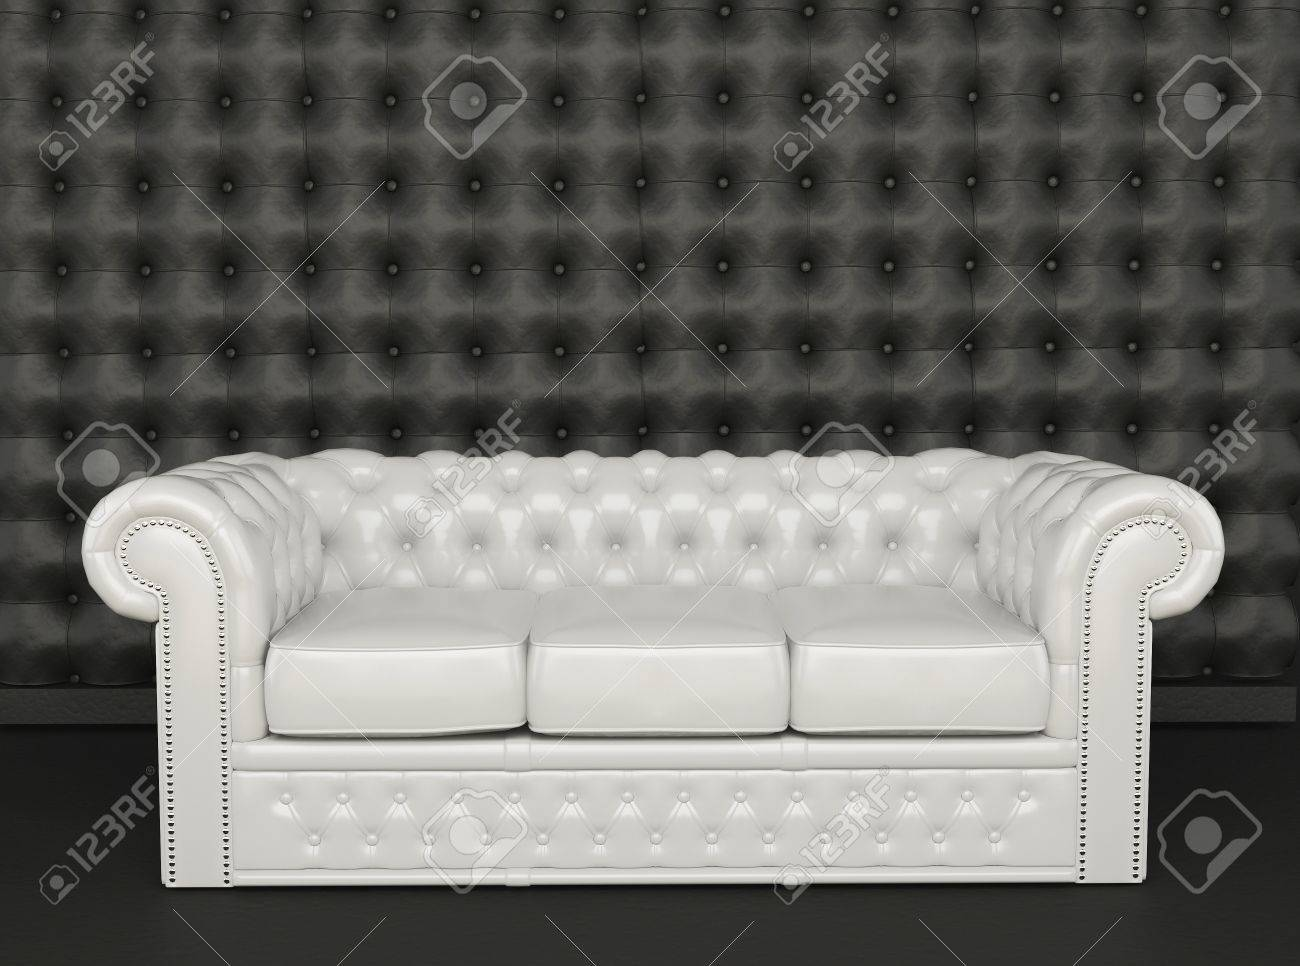 White Leather Sofa A Black Background Stock Picture And